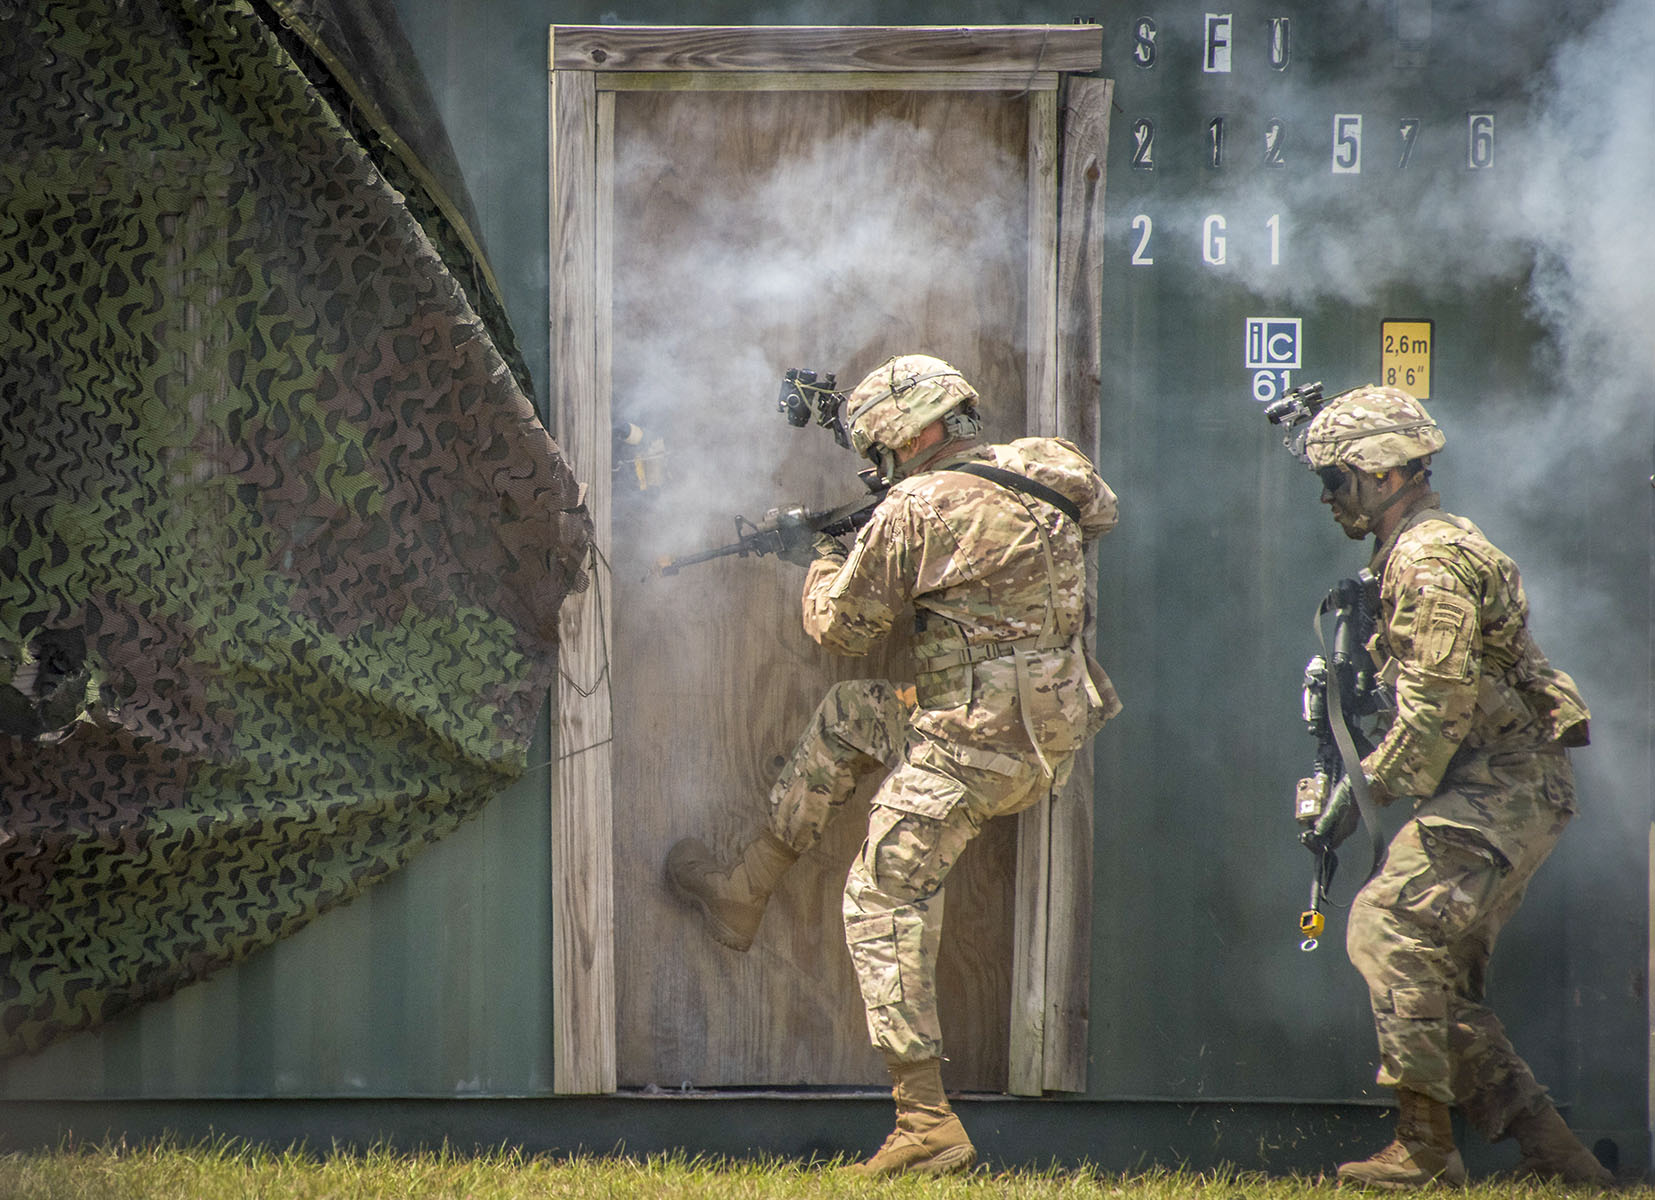 An Army Ranger kicks in a door during a demonstration at the 6th Ranger Training Battalion's open house event May 5, 2018, at Eglin Air Force Base, Fla. The event was a chance for the public to learn how Rangers train and operate. The event displays showed equipment, weapons, a reptile zoo, face painting and weapon firing among others. The demonstrations showed off hand-to-hand combat, a parachute jump, snake show and Rangers in action. (Samuel King Jr./Air Force)